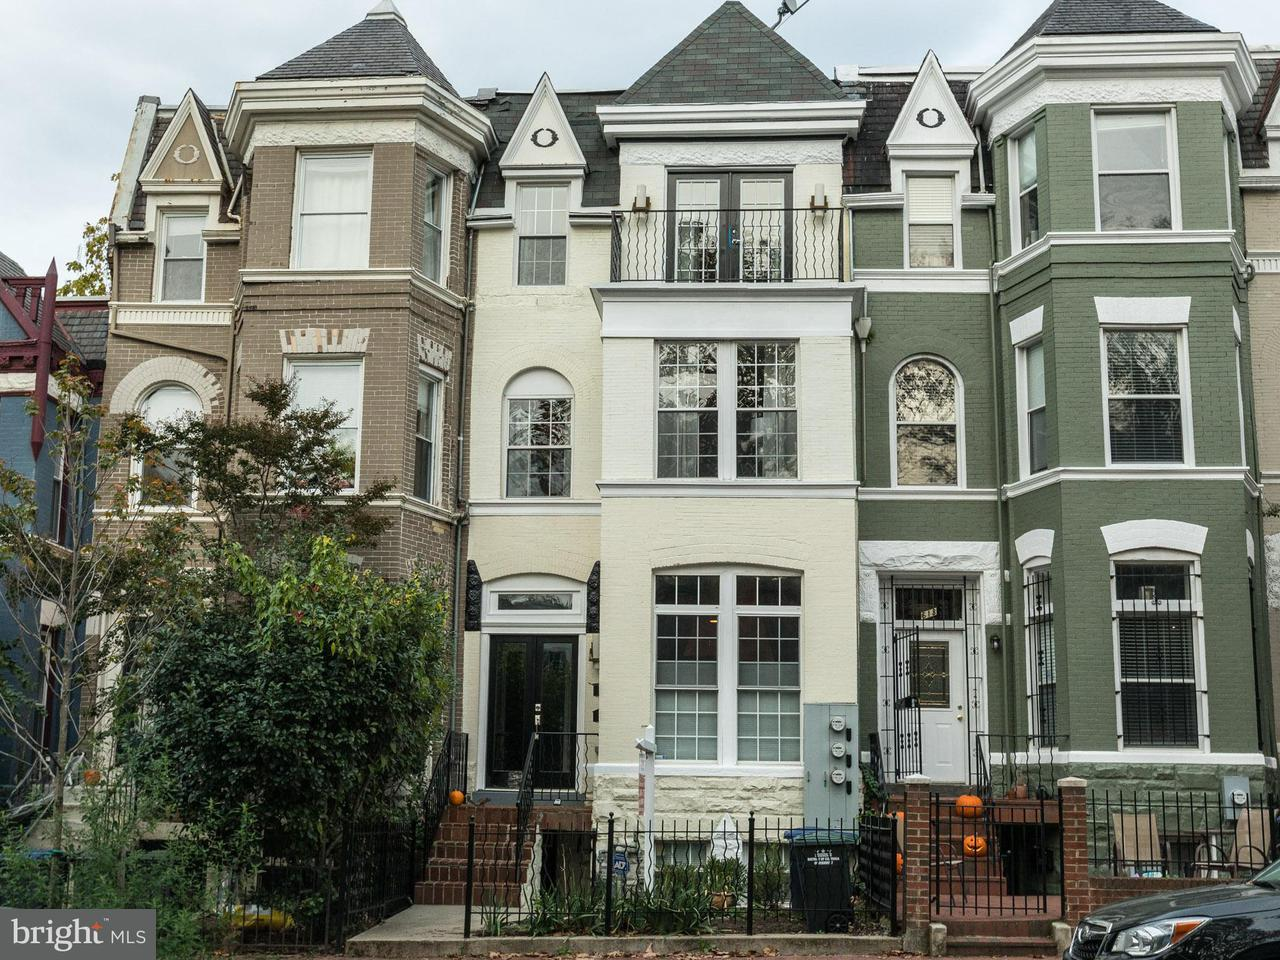 Duplex for Sale at 615 8TH ST NE 615 8TH ST NE Washington, District Of Columbia 20002 United States